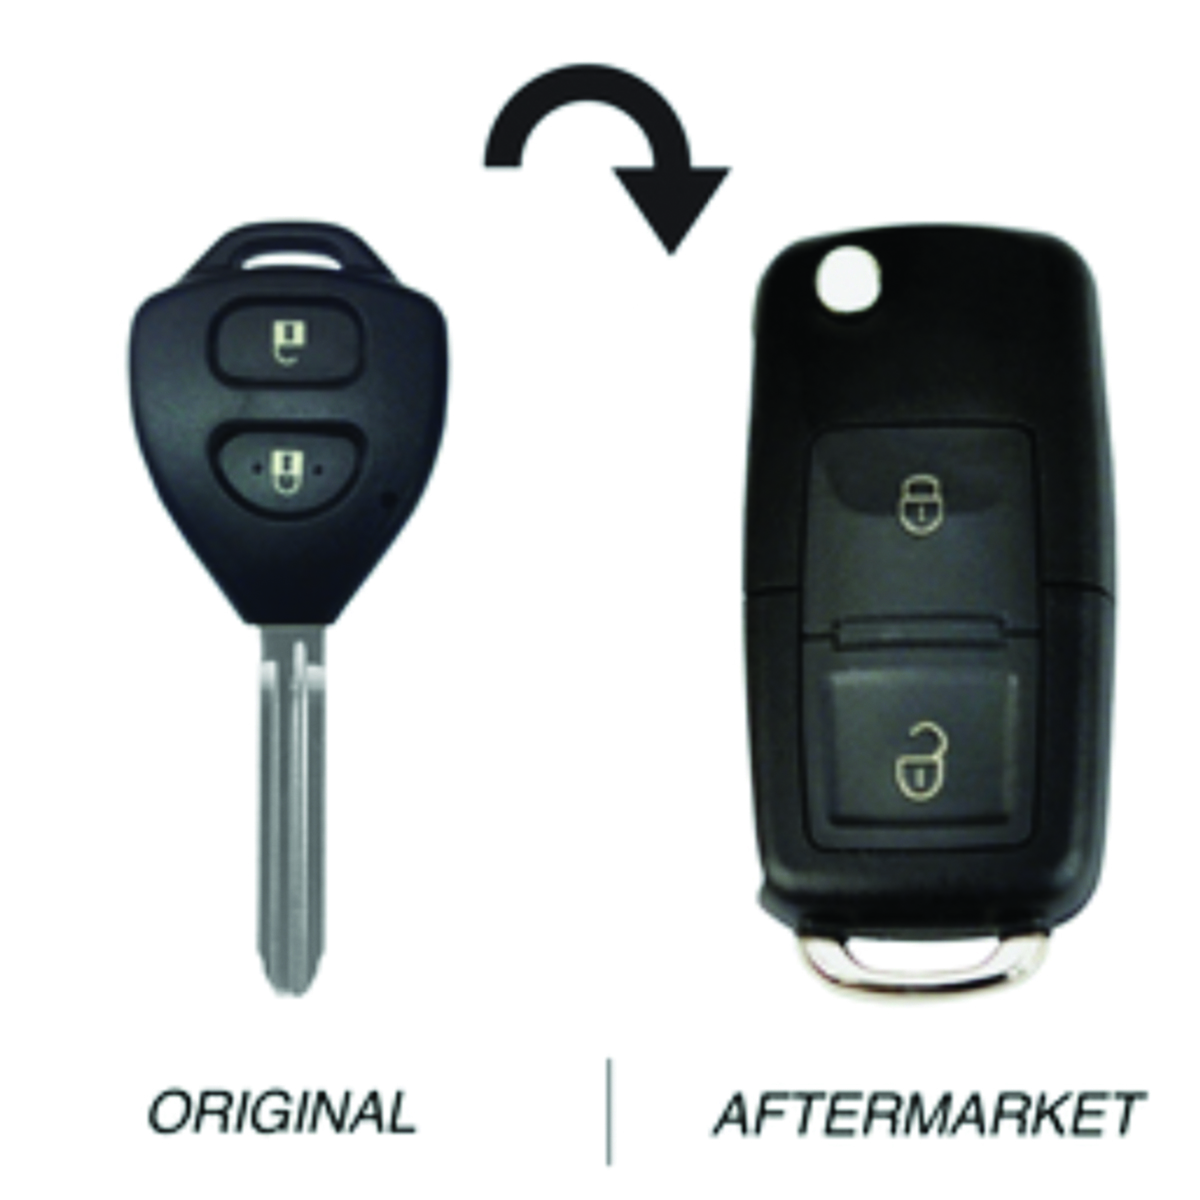 Toyota Compatible 2 Button TOY43 Remote Key 67 Chip 314MHz (28240)